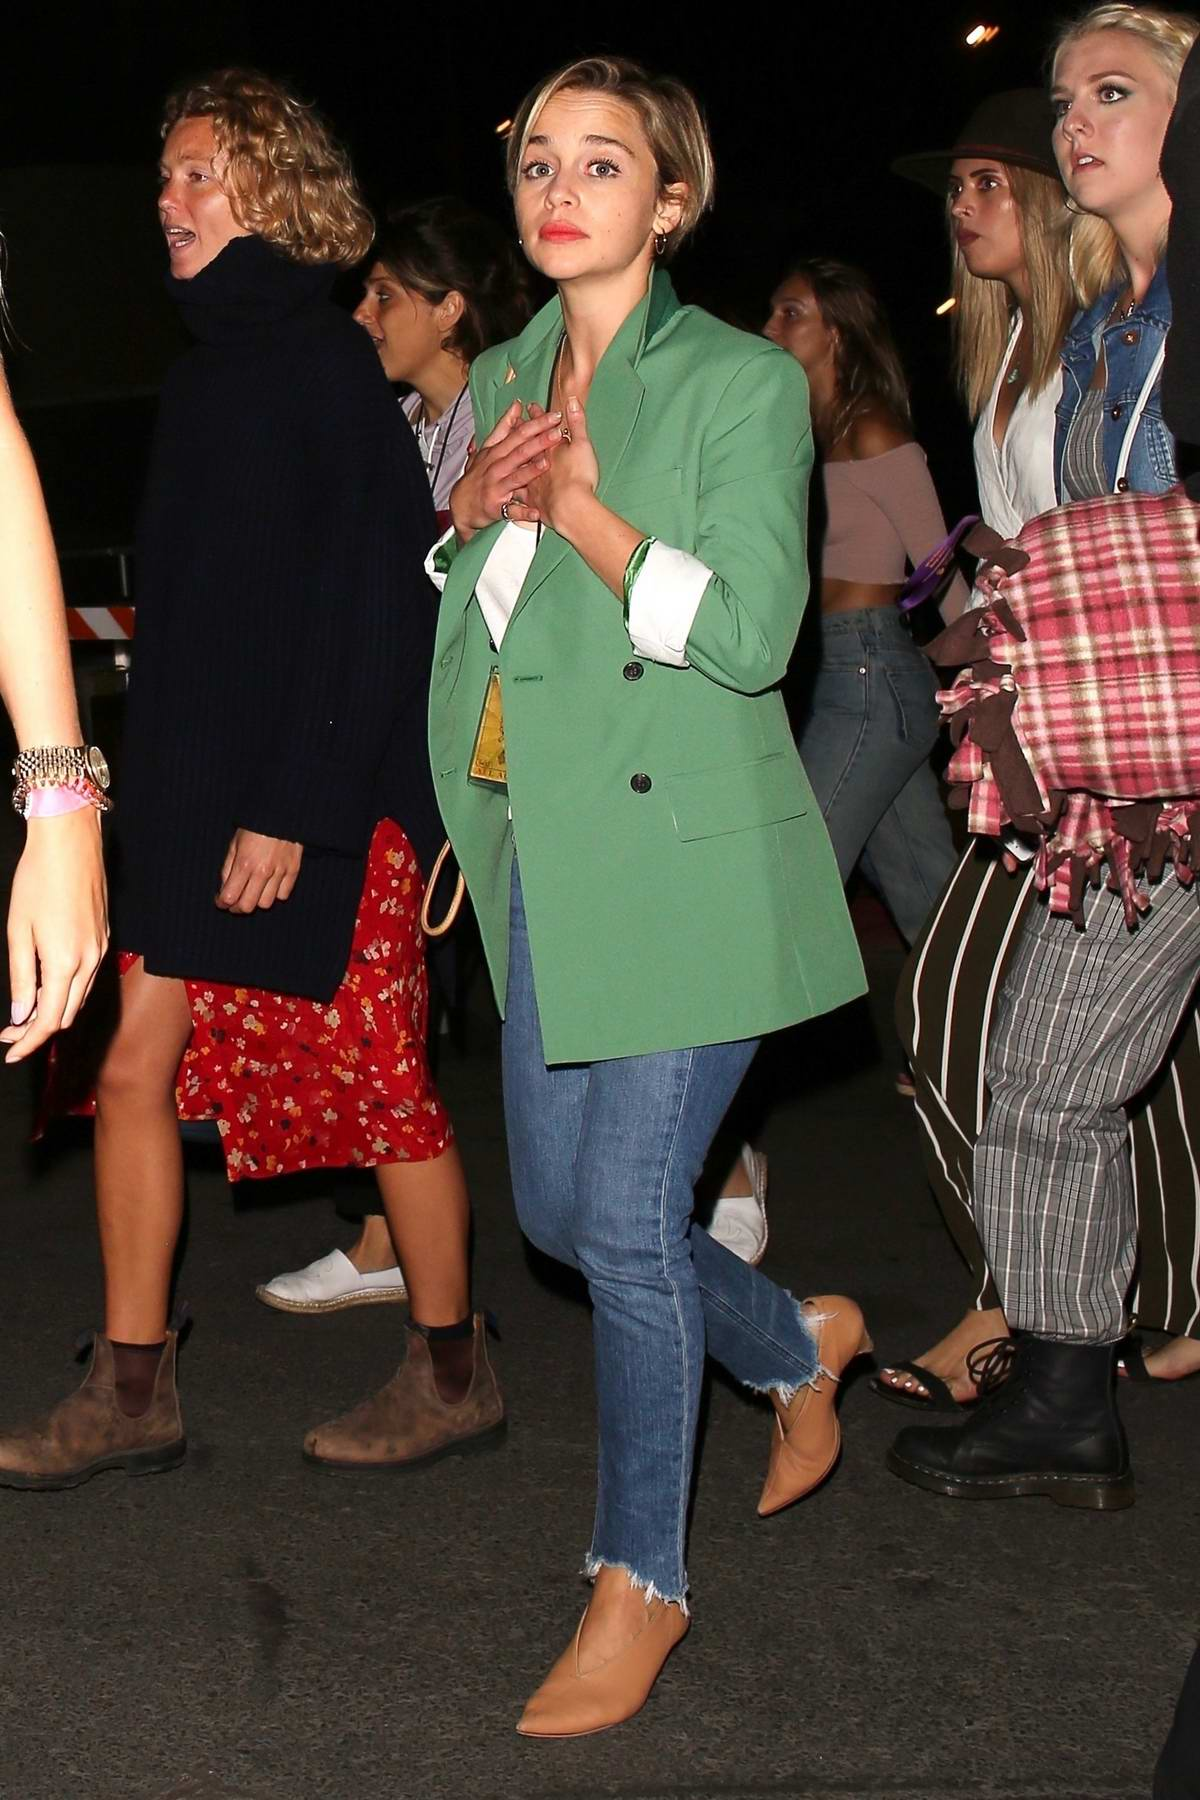 Emilia Clarke enjoys a night out watching Florence + The Machine at the Hollywood Bowl in Los Angeles